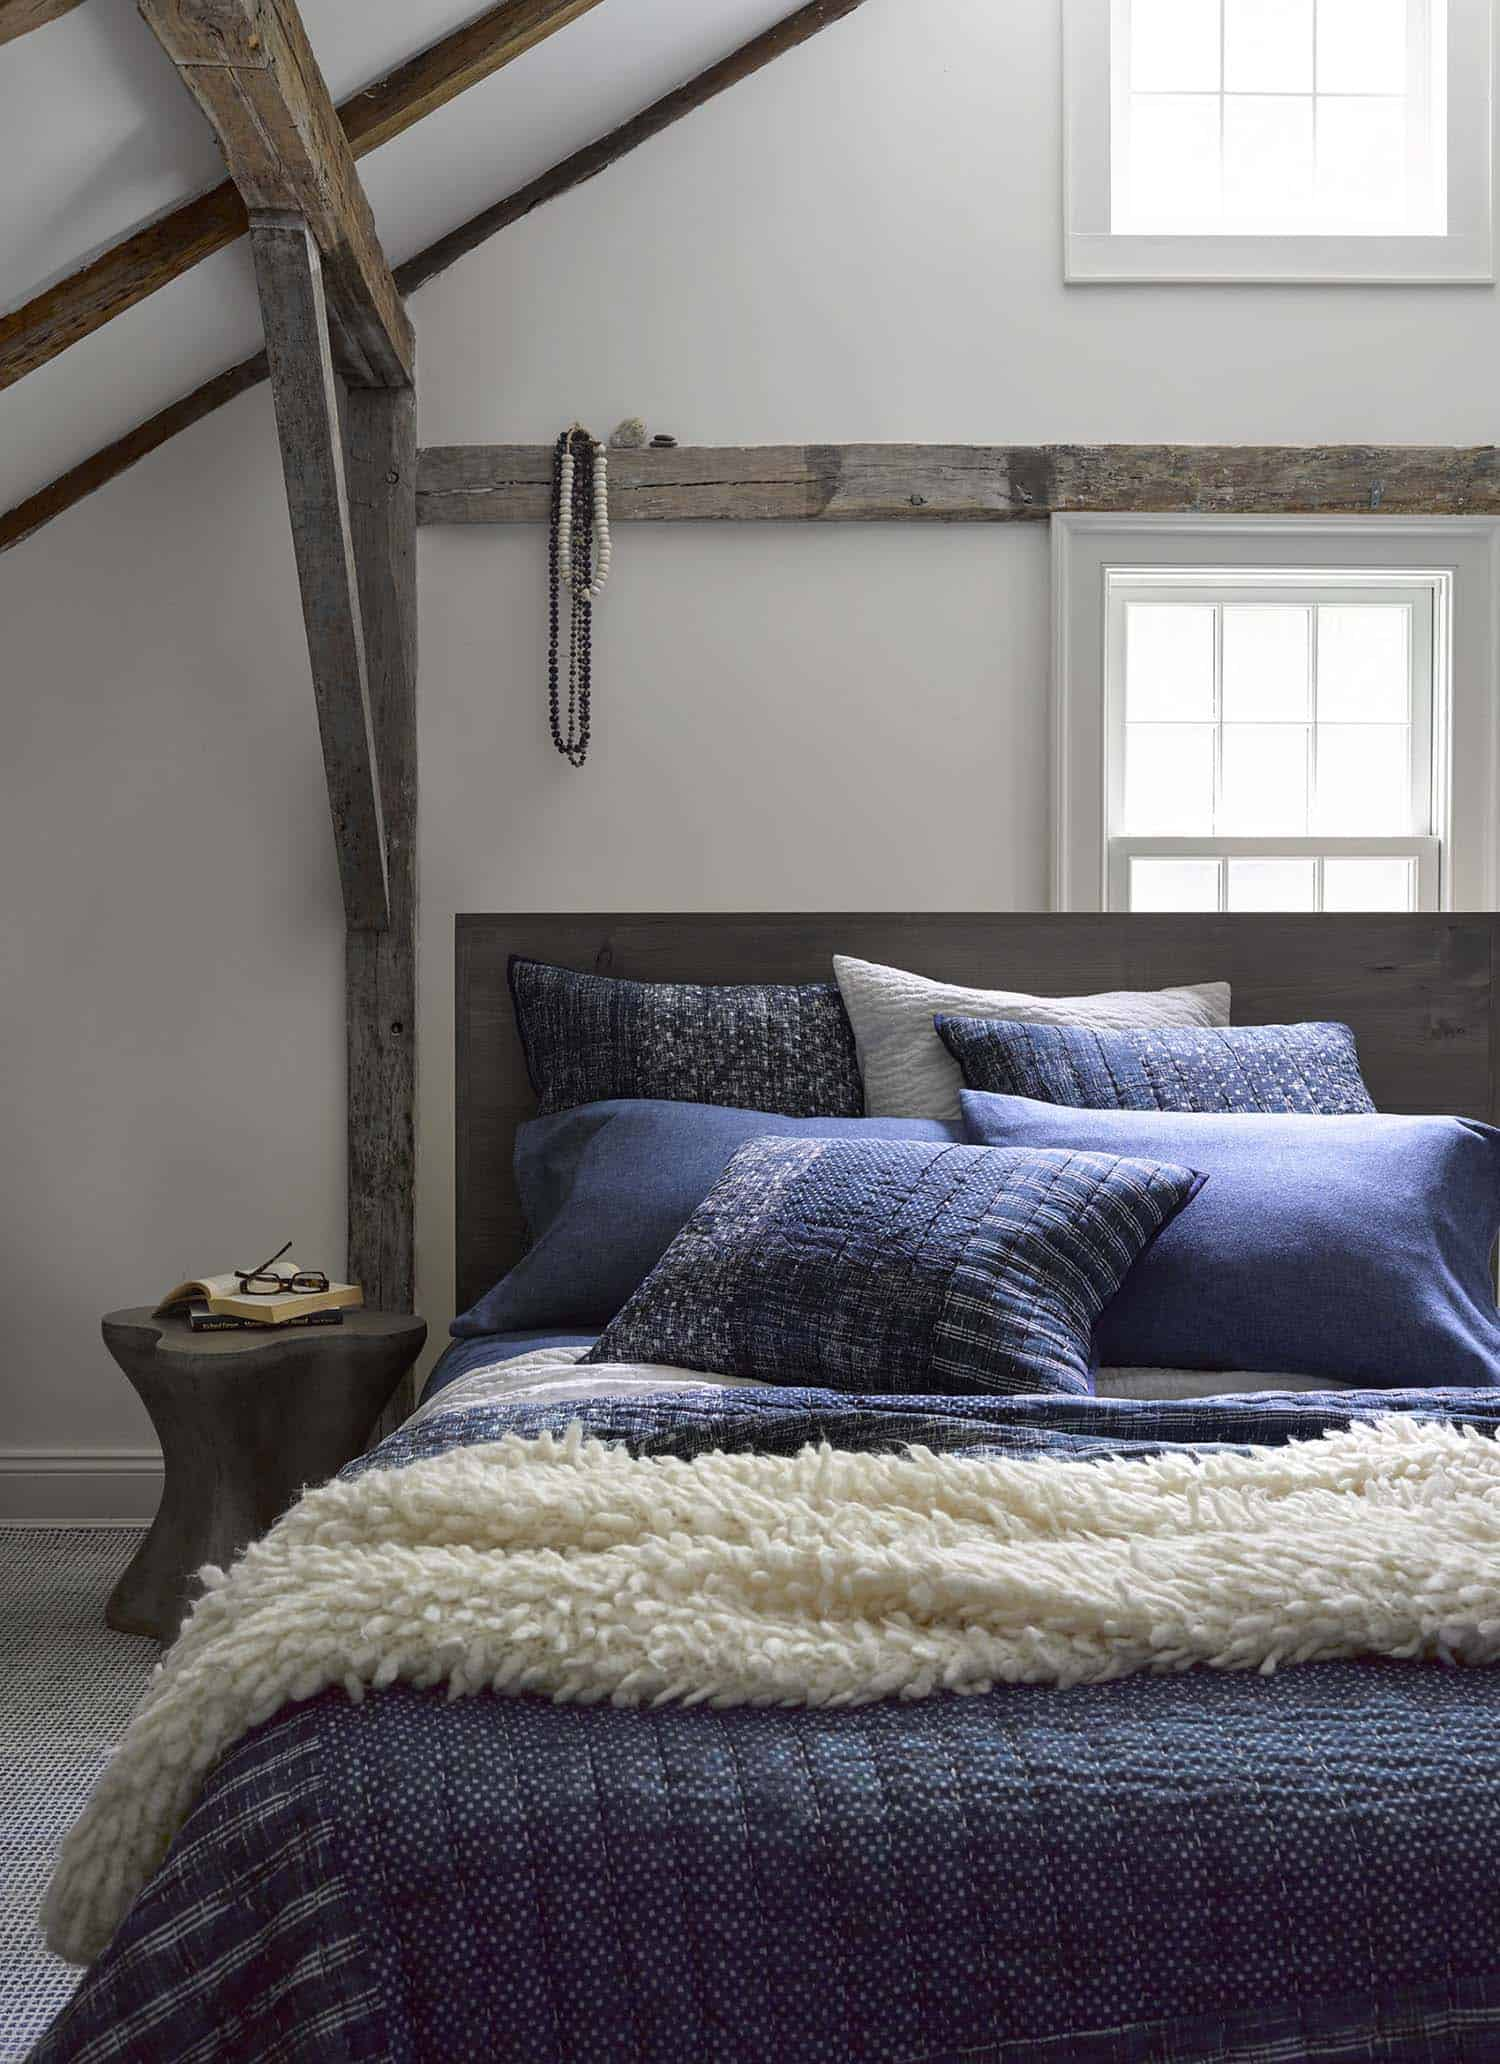 inspiring cozy bedroom | 15 Inspiring ways to cozy up your bedroom space for fall